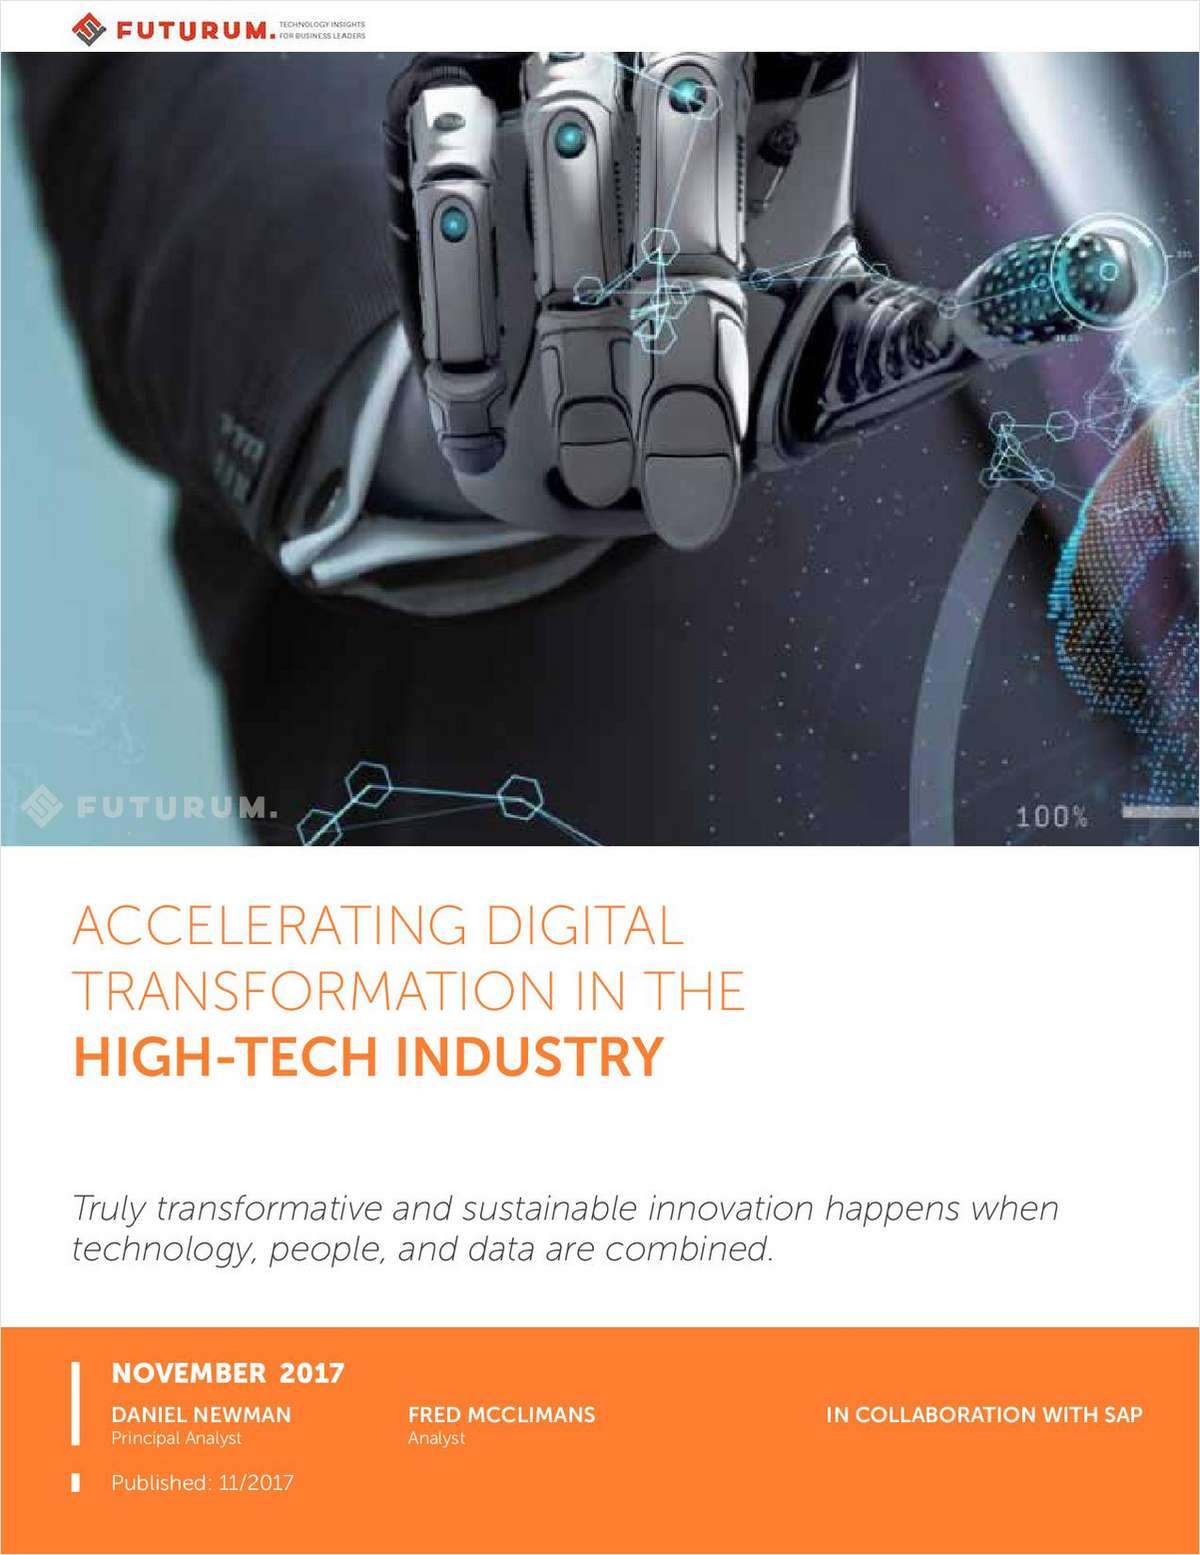 Accelerating Digital Transformation In The High-Tech Industry